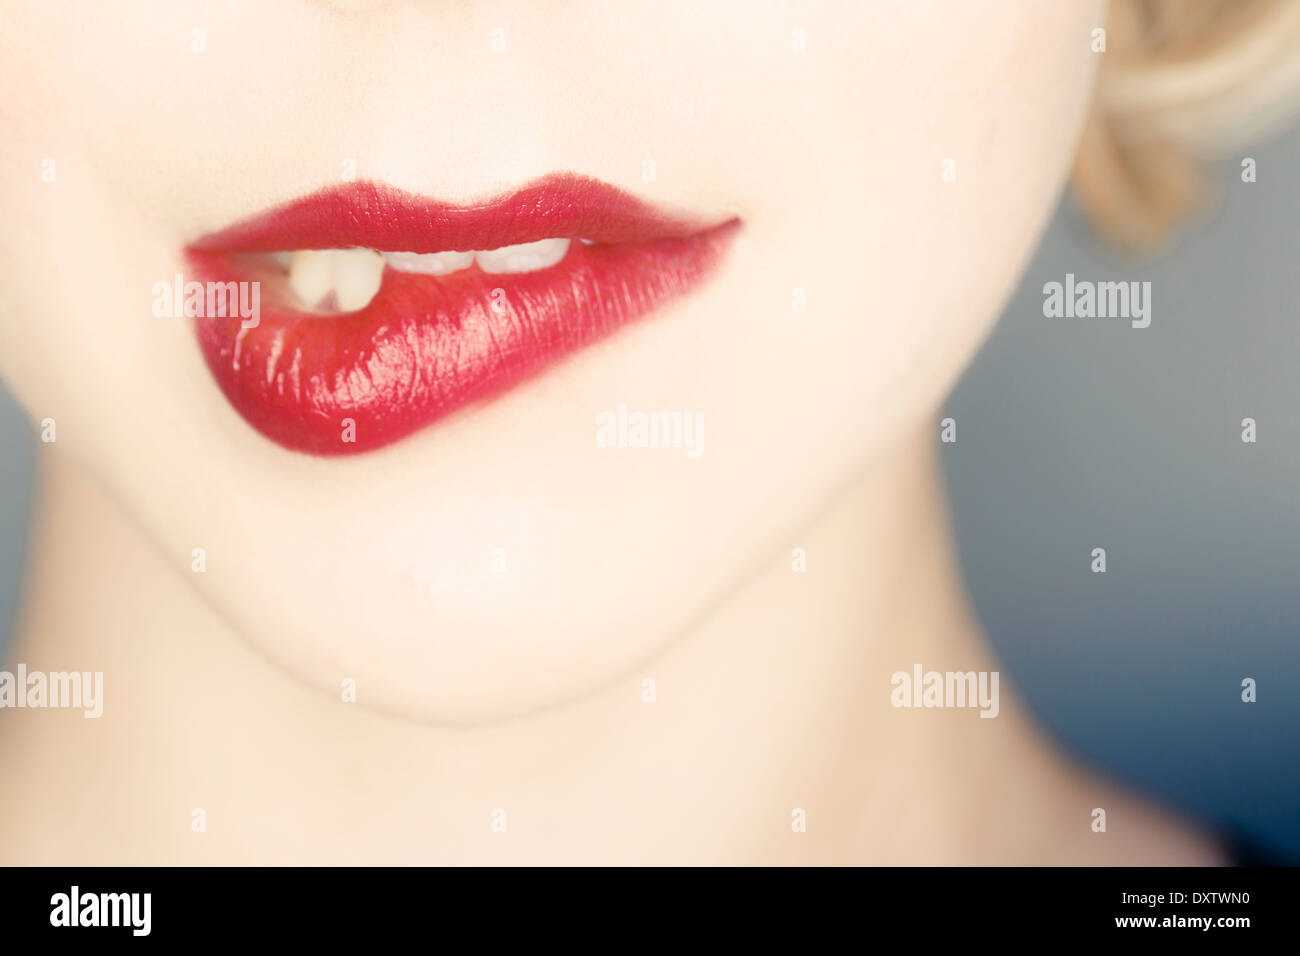 Woman, Close-up of human lips, making a face - Stock Image